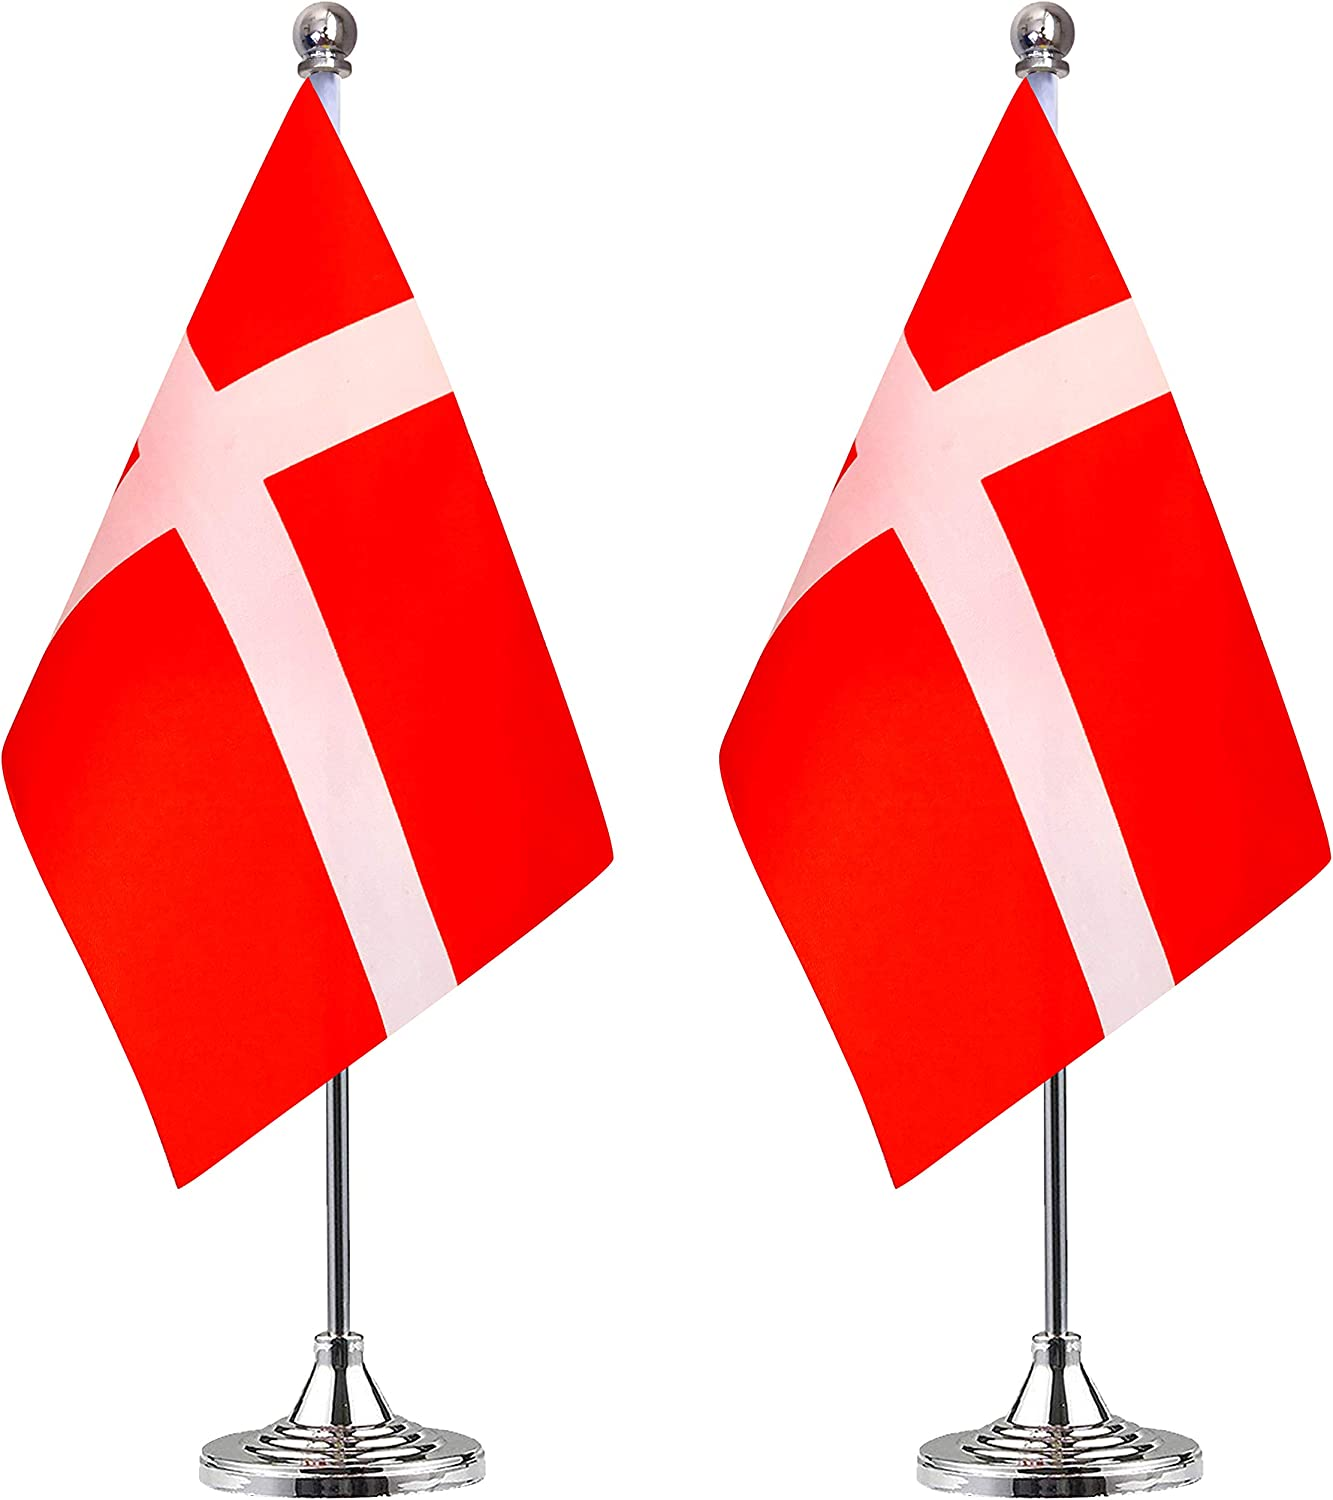 WEITBF Denmark Dane Desk Flag Small Mini Danish Office Table Flag with Stand Base,Danish Dane Themed Party Decorations Celebration Event,2 Pack